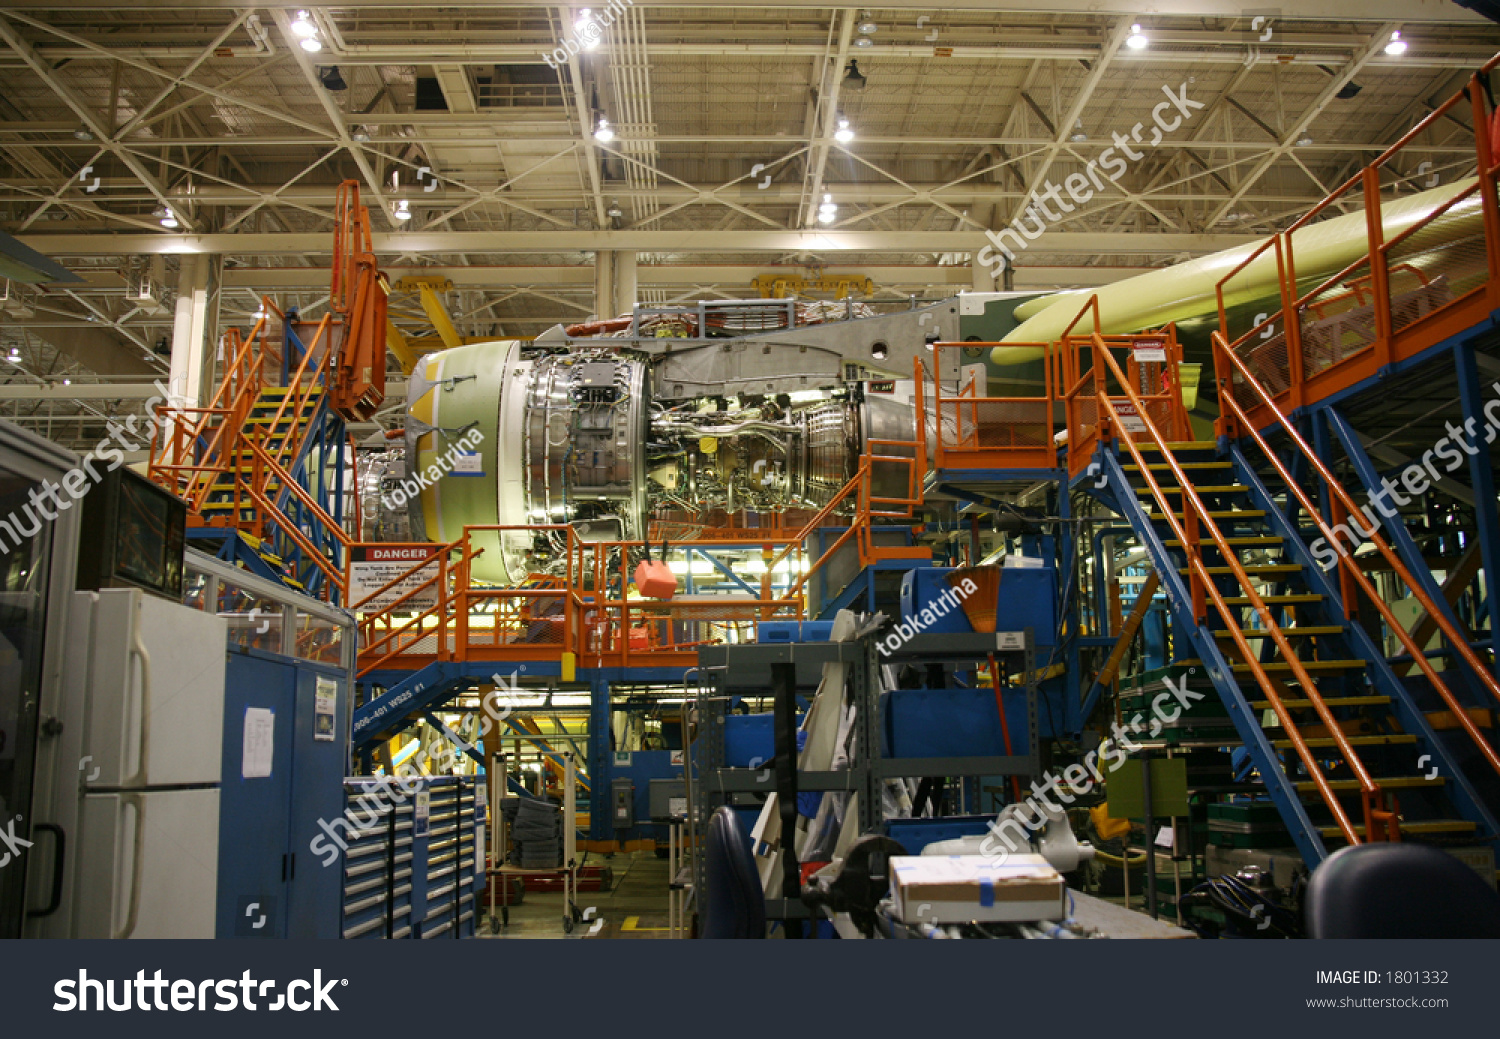 inside aerospace production facility - photo #9